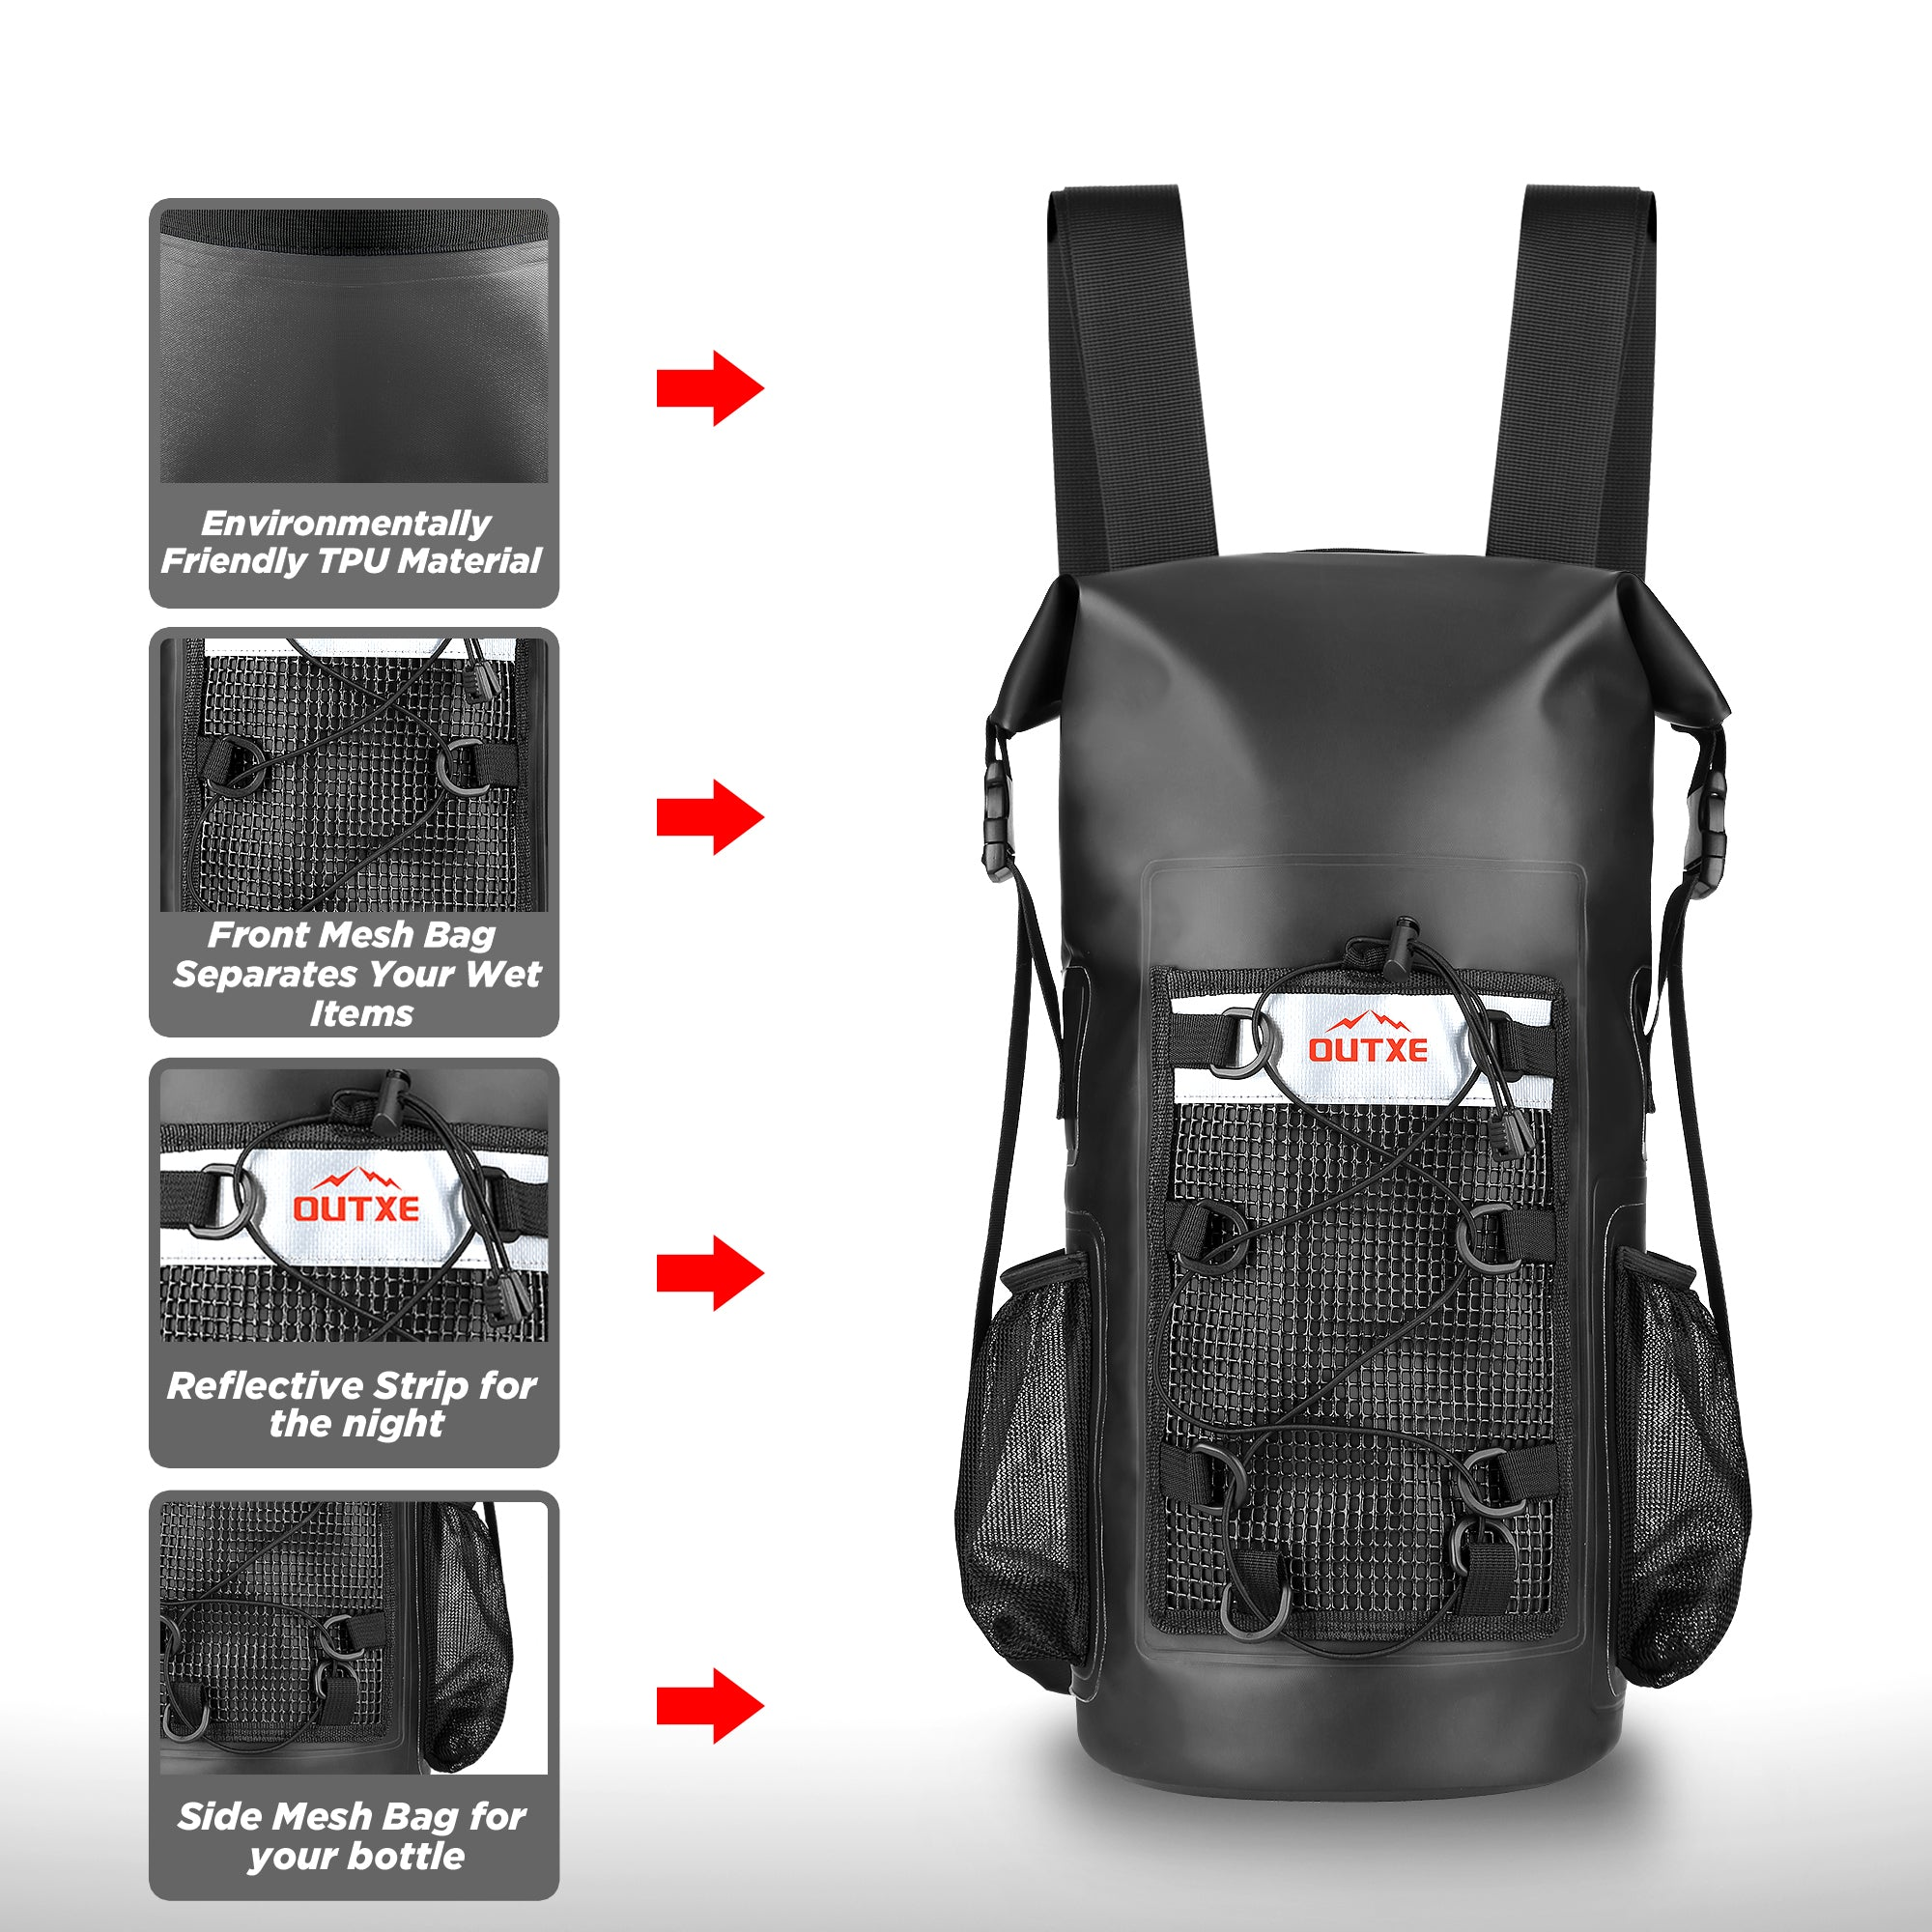 b2bcbb1e2d OUTXE 100% Waterproof TPU Dry Bag Backpack 20L